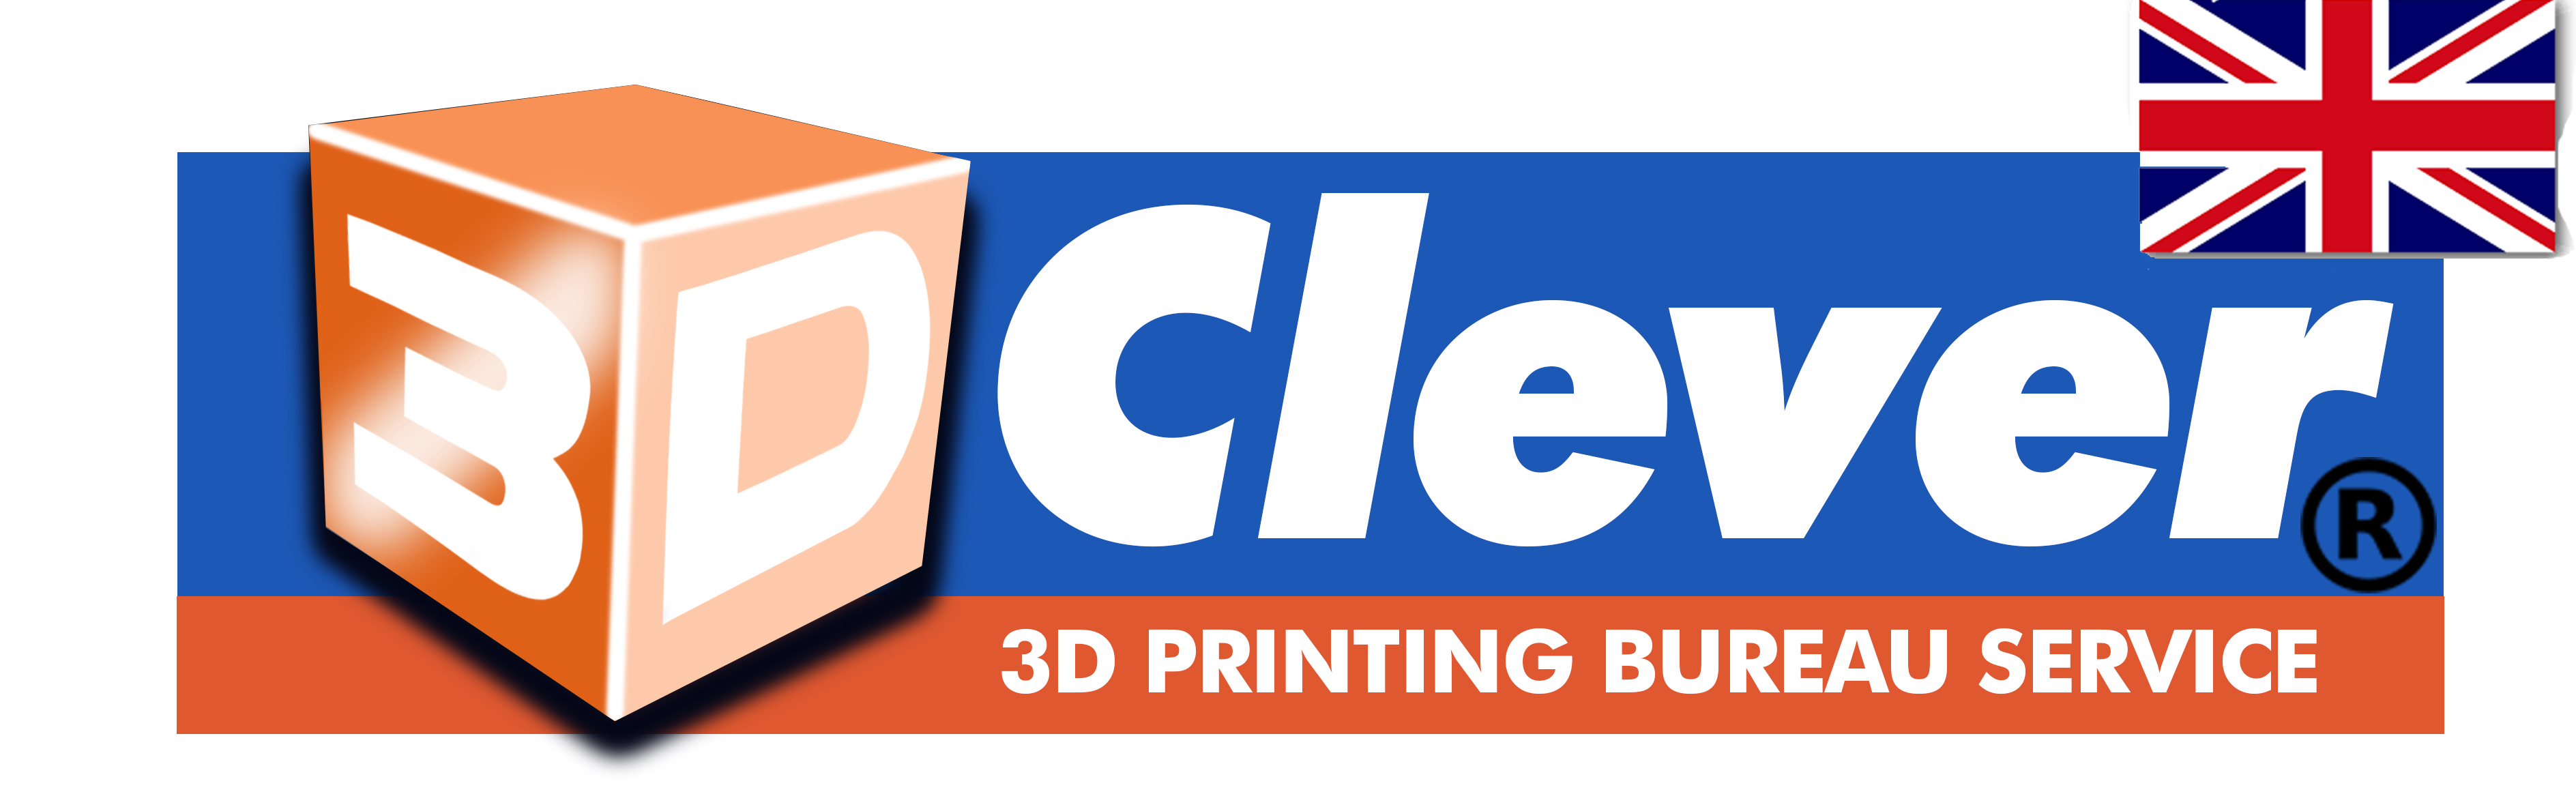 3dclever